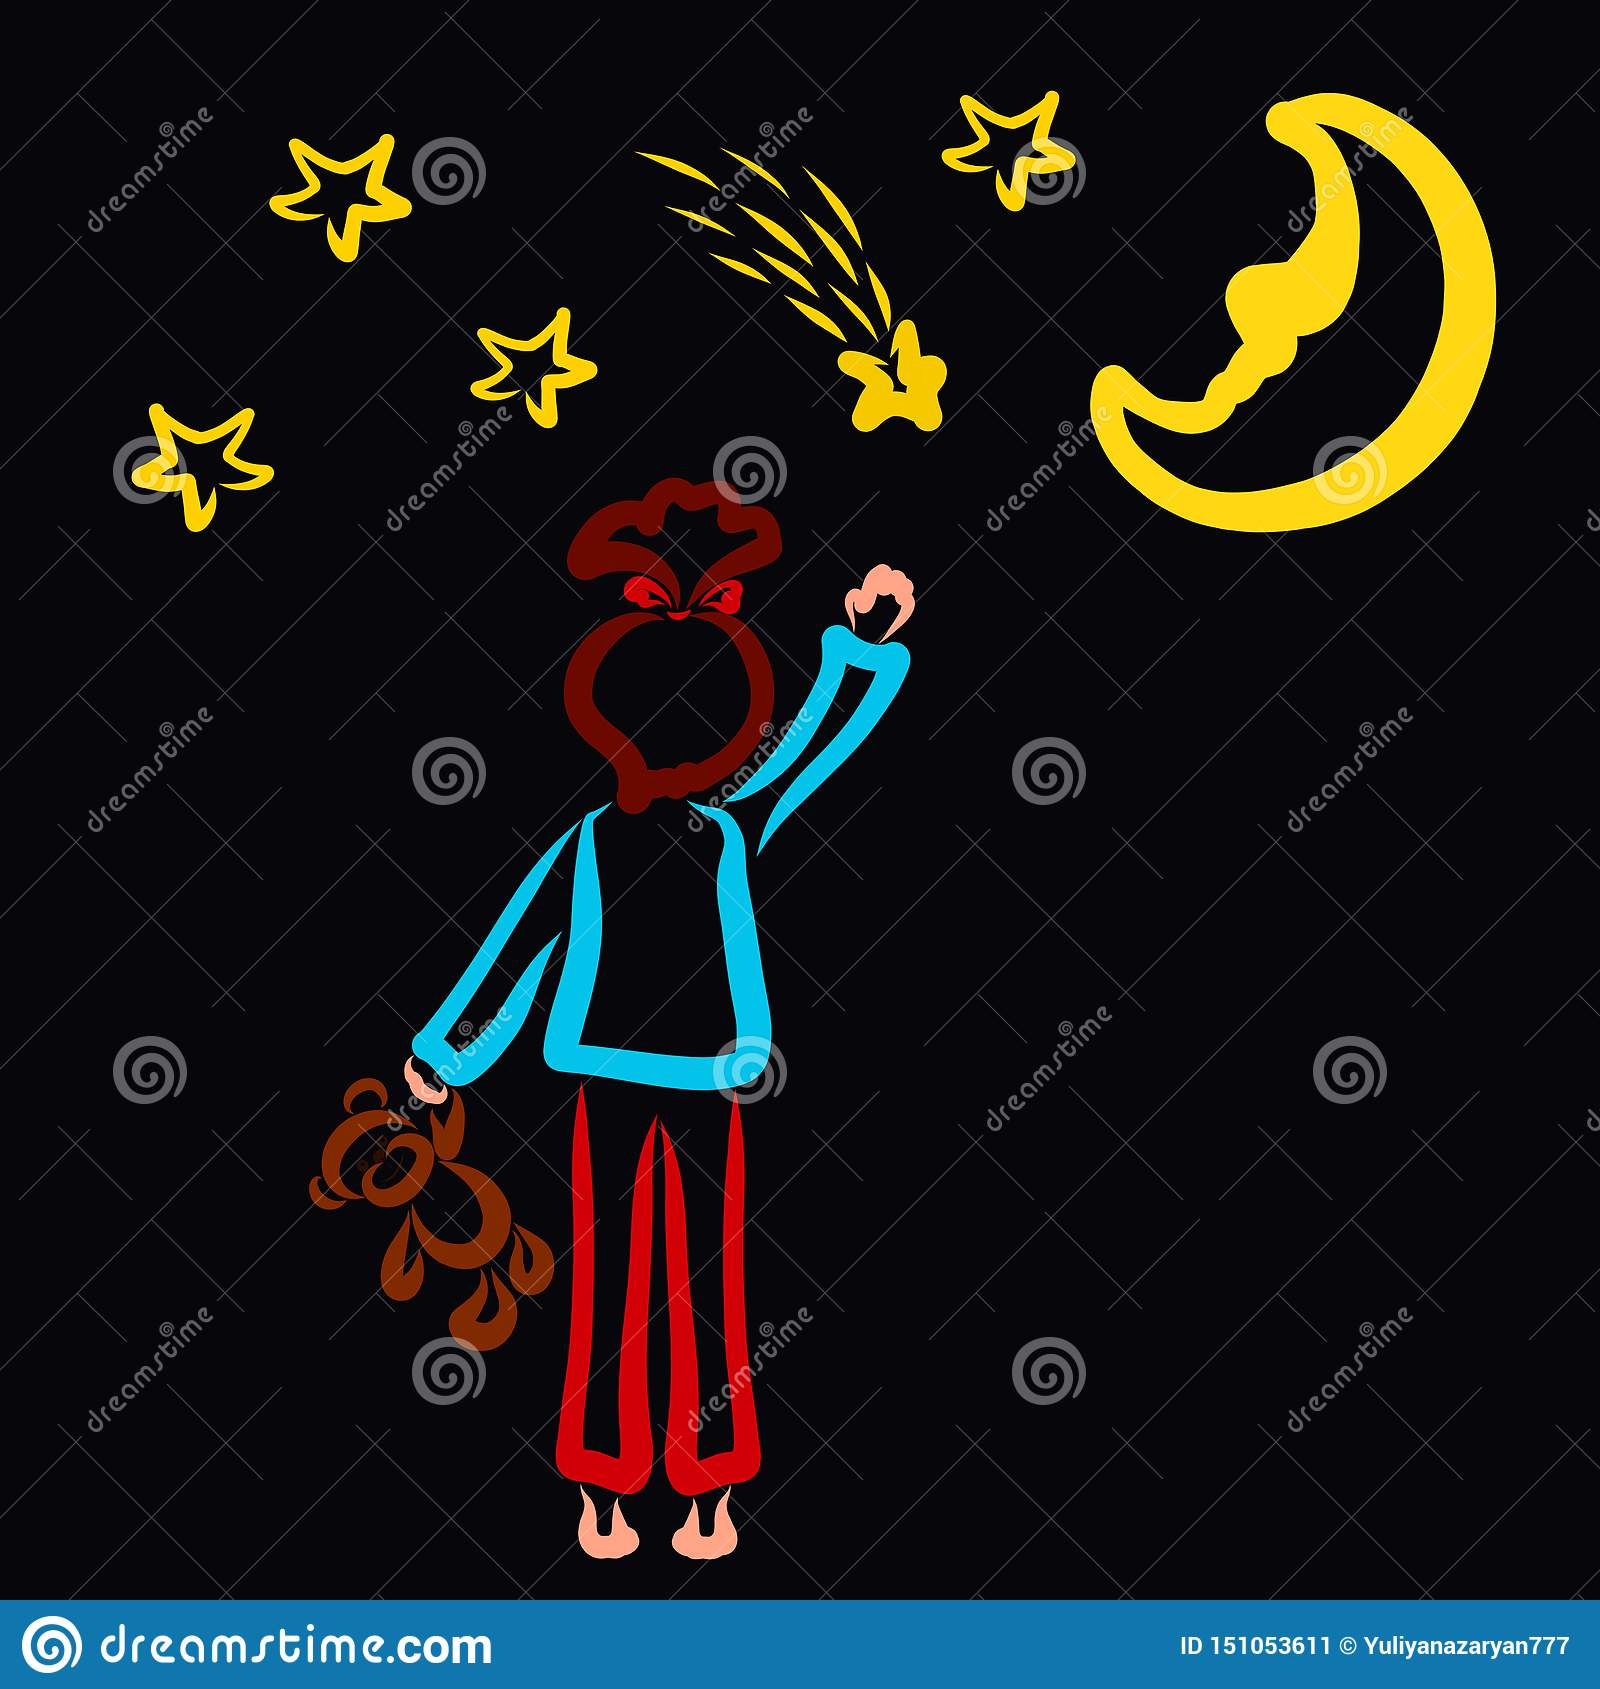 Girl in pajamas with a teddy bear in her hand wants to catch a falling star